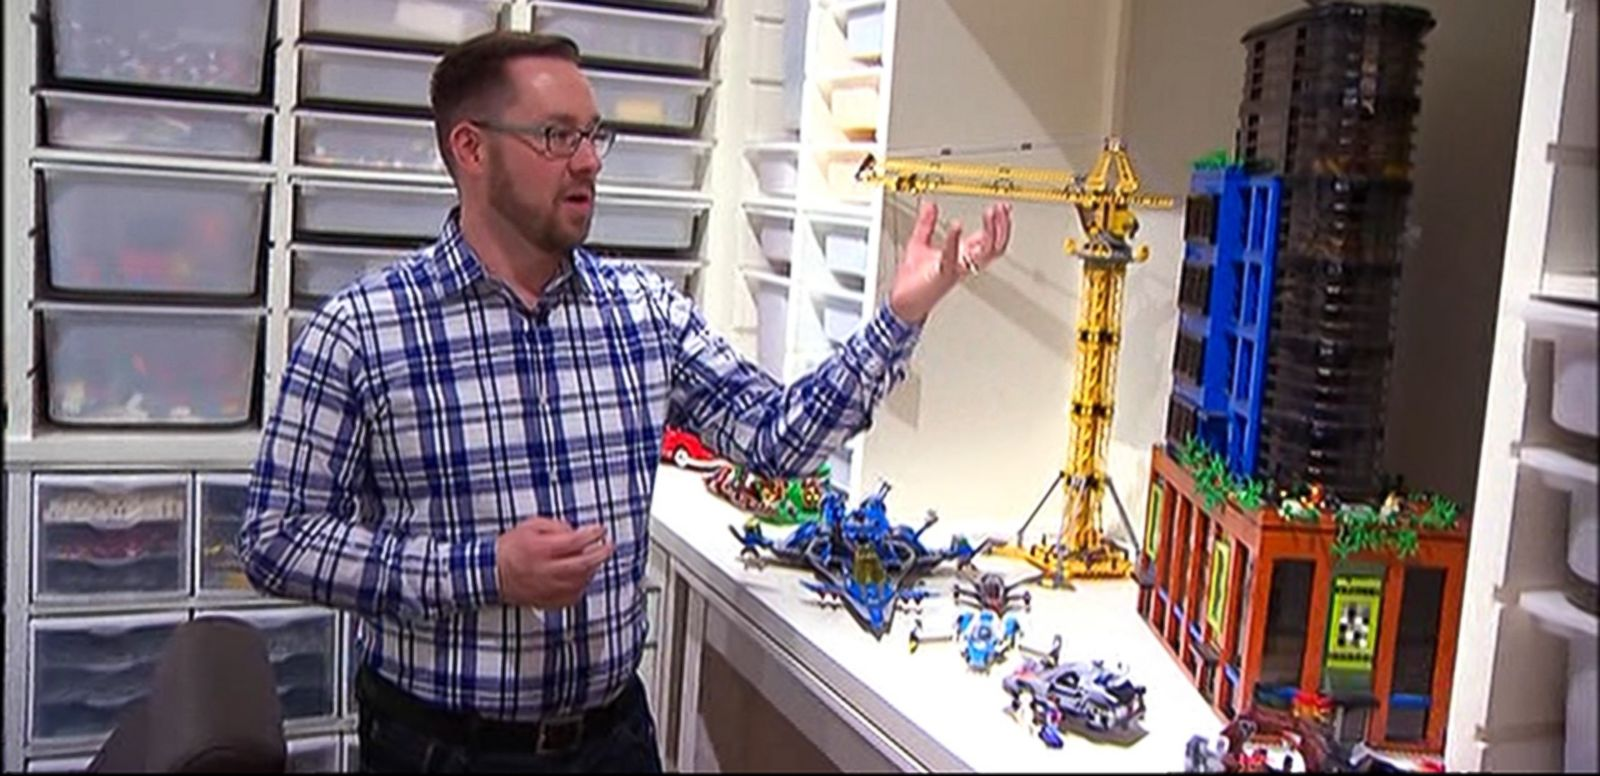 VIDEO: Jeff Pelletier's love for Legos now has its own room, complete with 150 bins to store those little plastic pieces.